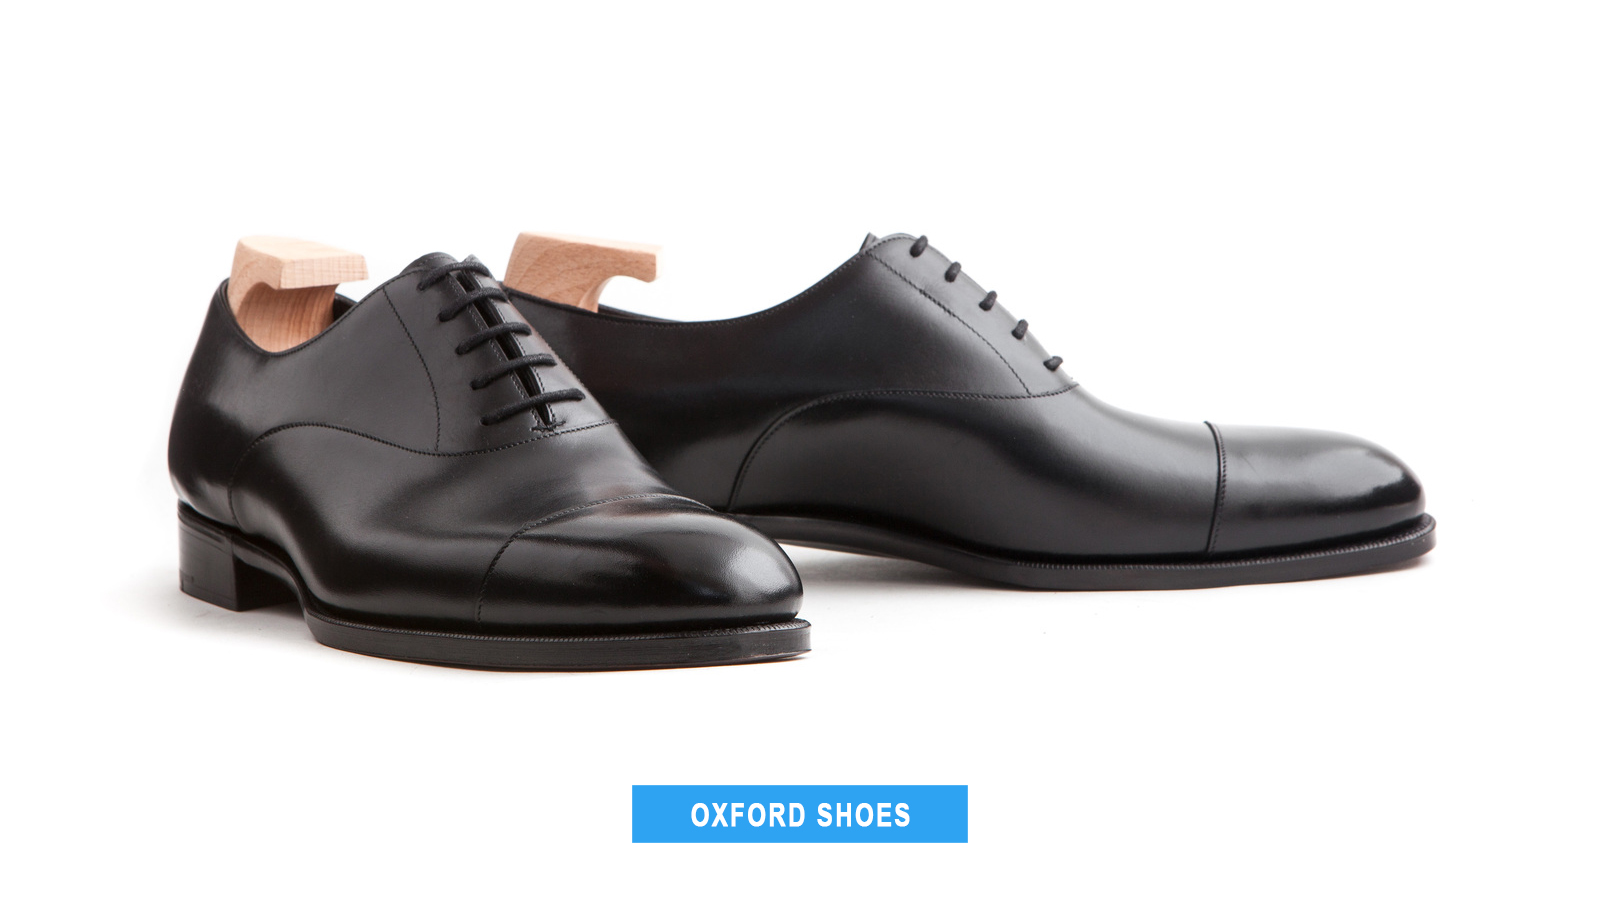 oxford dress shoes style